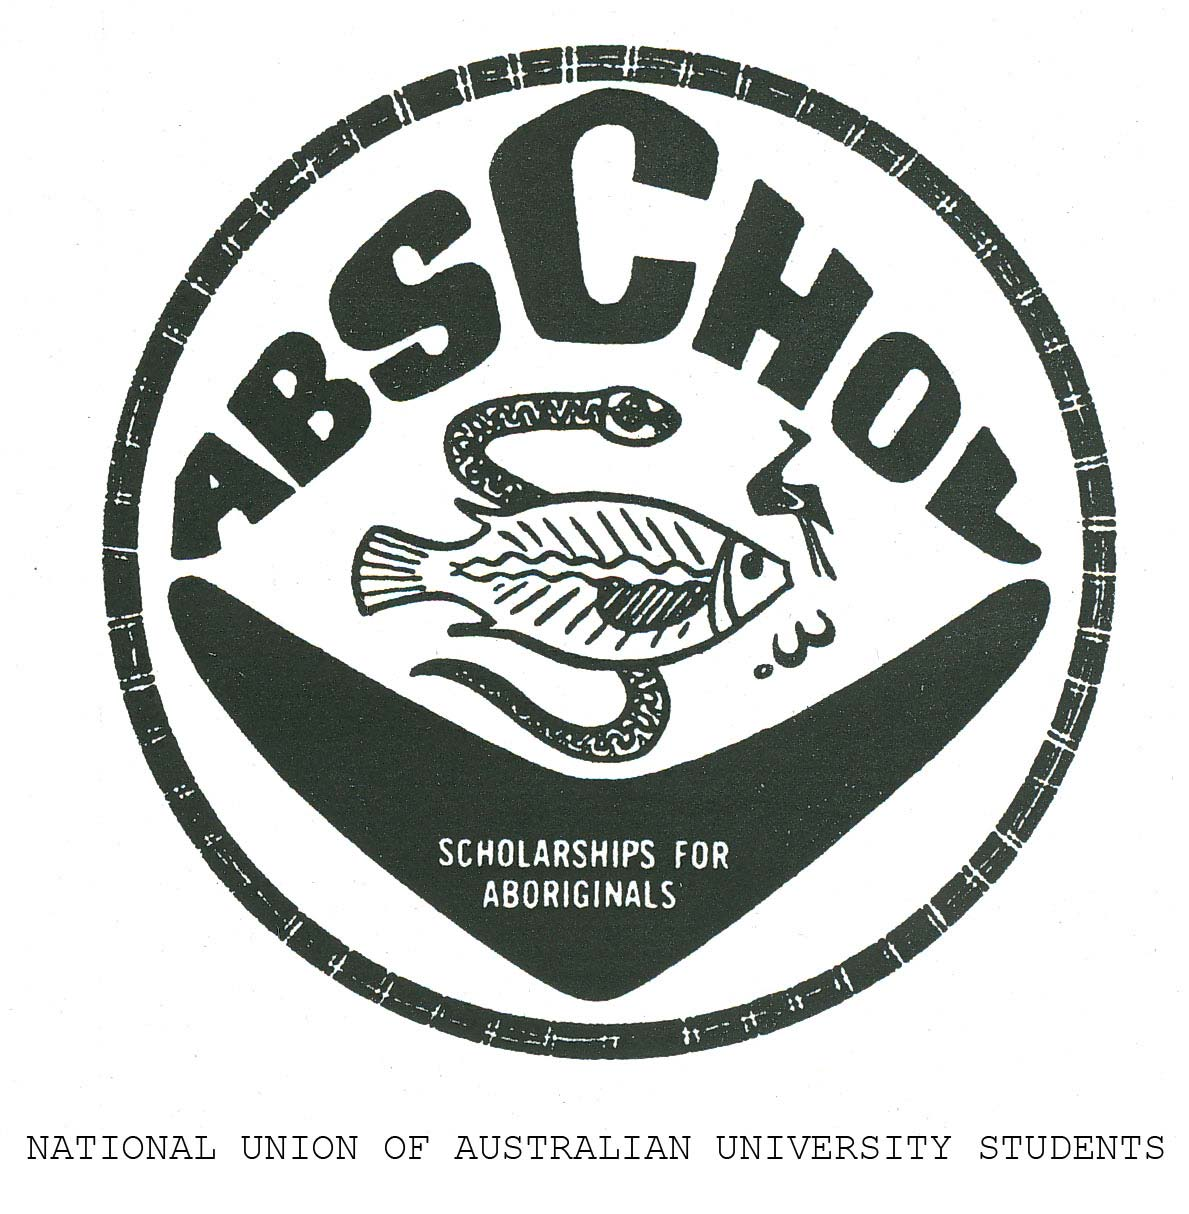 ABSCHOL logo with the text: SCHOLARSHIPS FOR ABORIGINALS. - click to view larger image